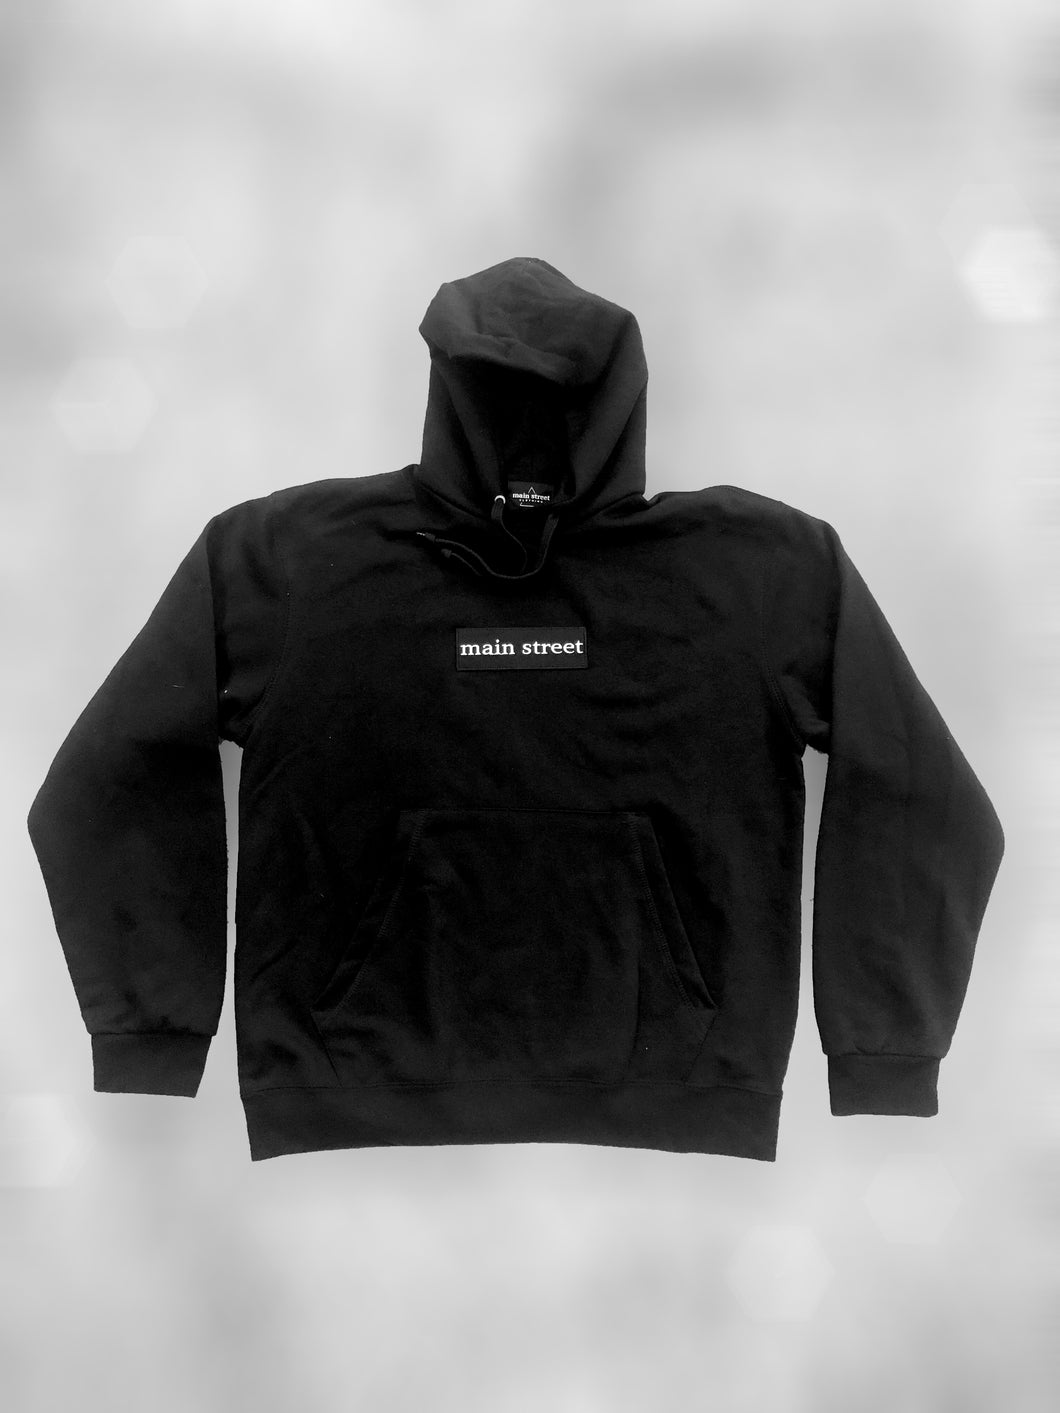 Hoodie Box Logo Black on Black - Main Street®